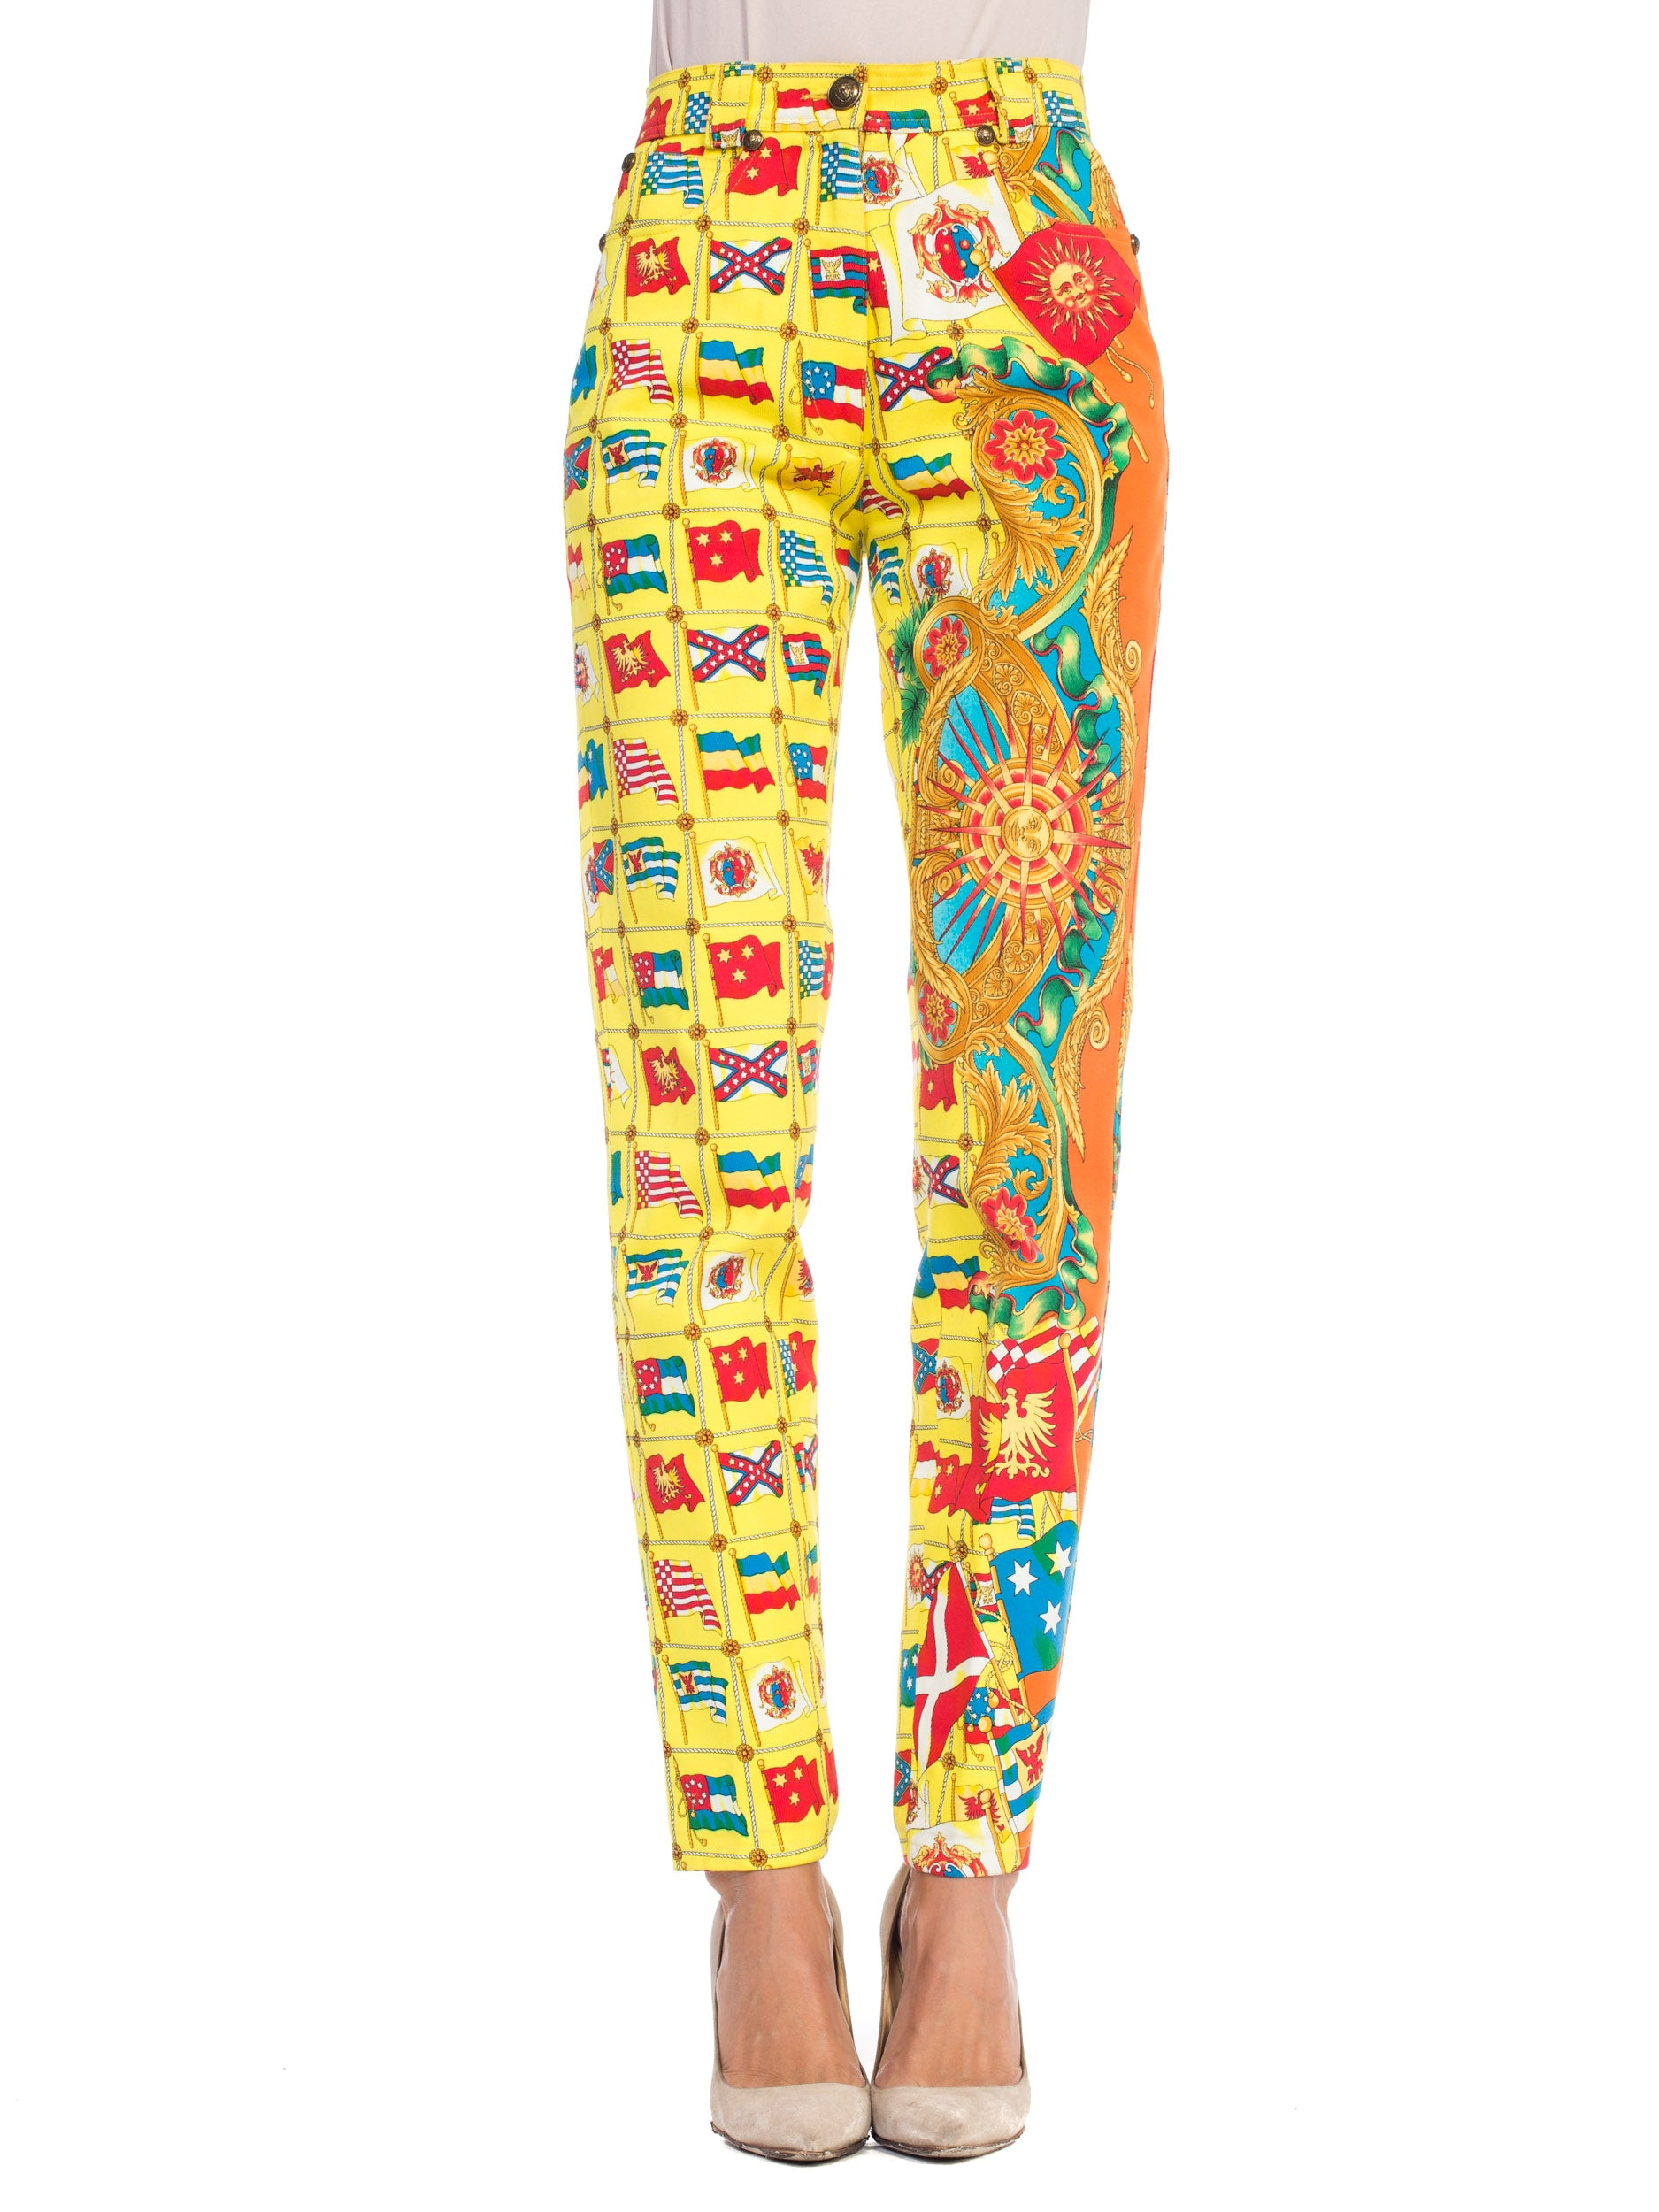 1990s Gianni Versace Miami Collection Printed Jeans